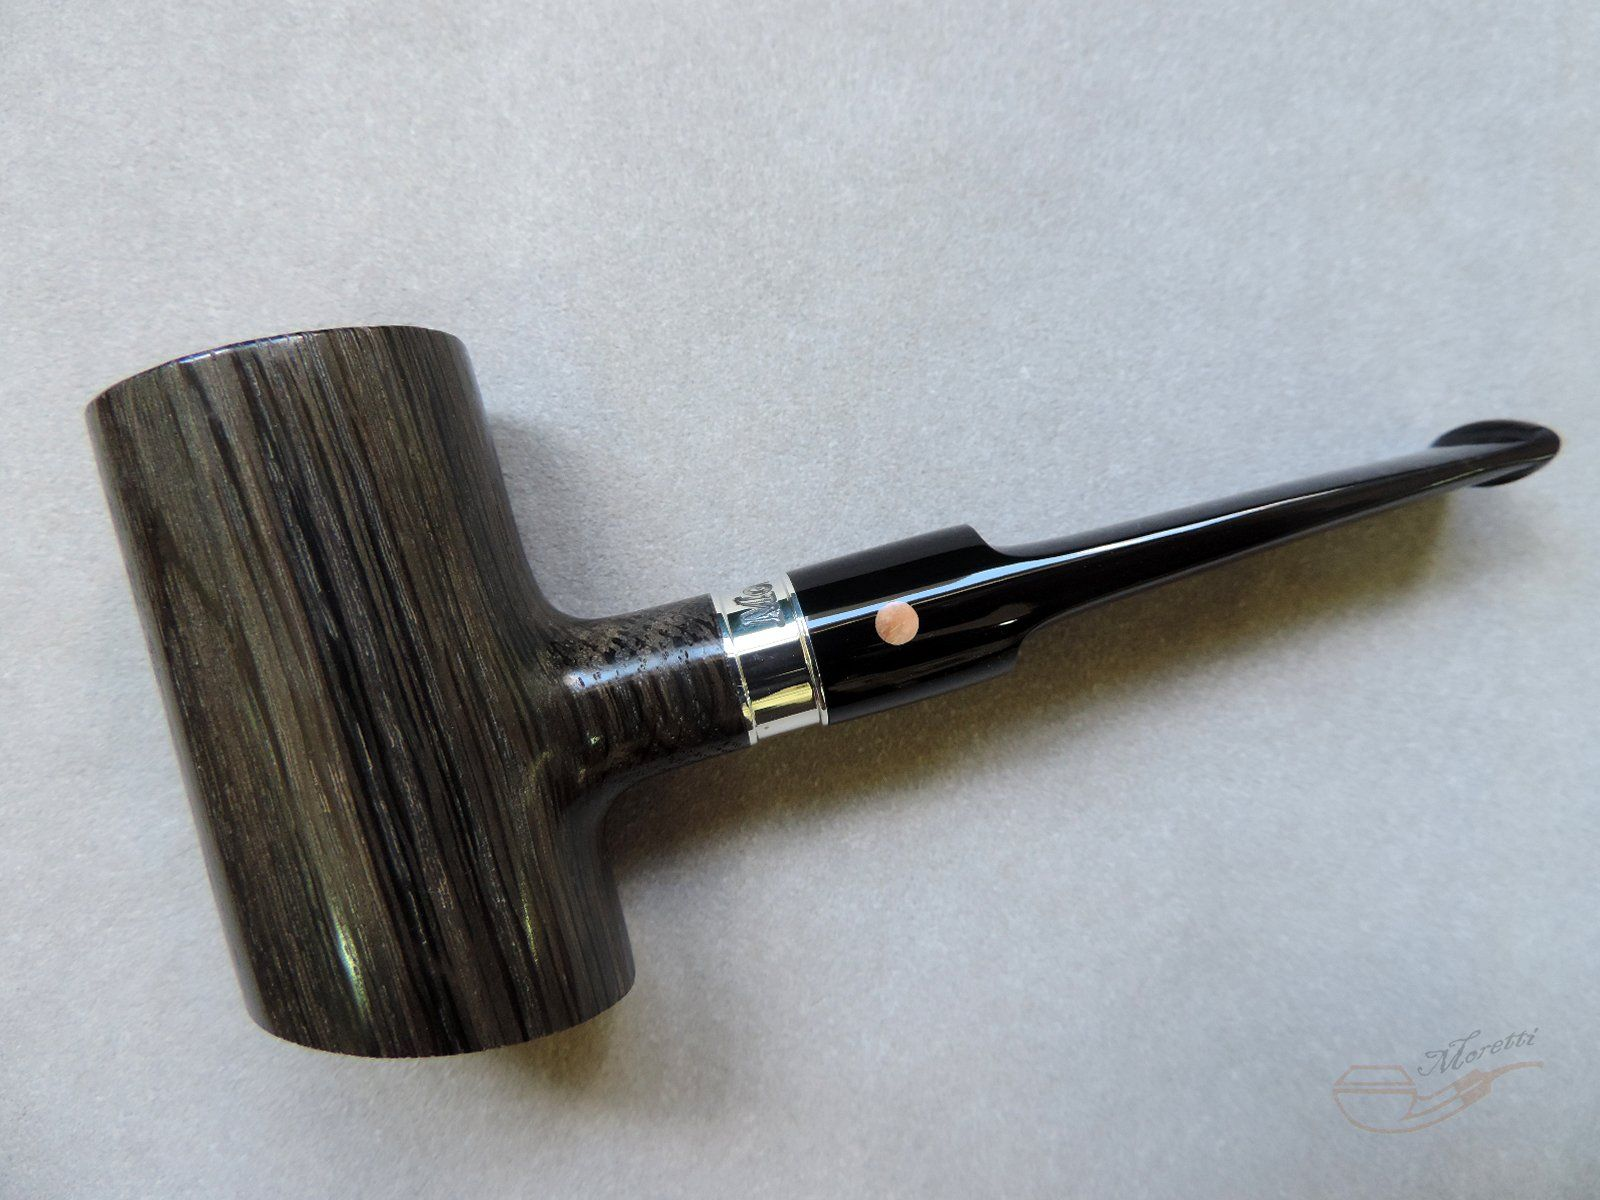 Nicely polished black wood pipe #woodstonepipes | tobacco pipes ...